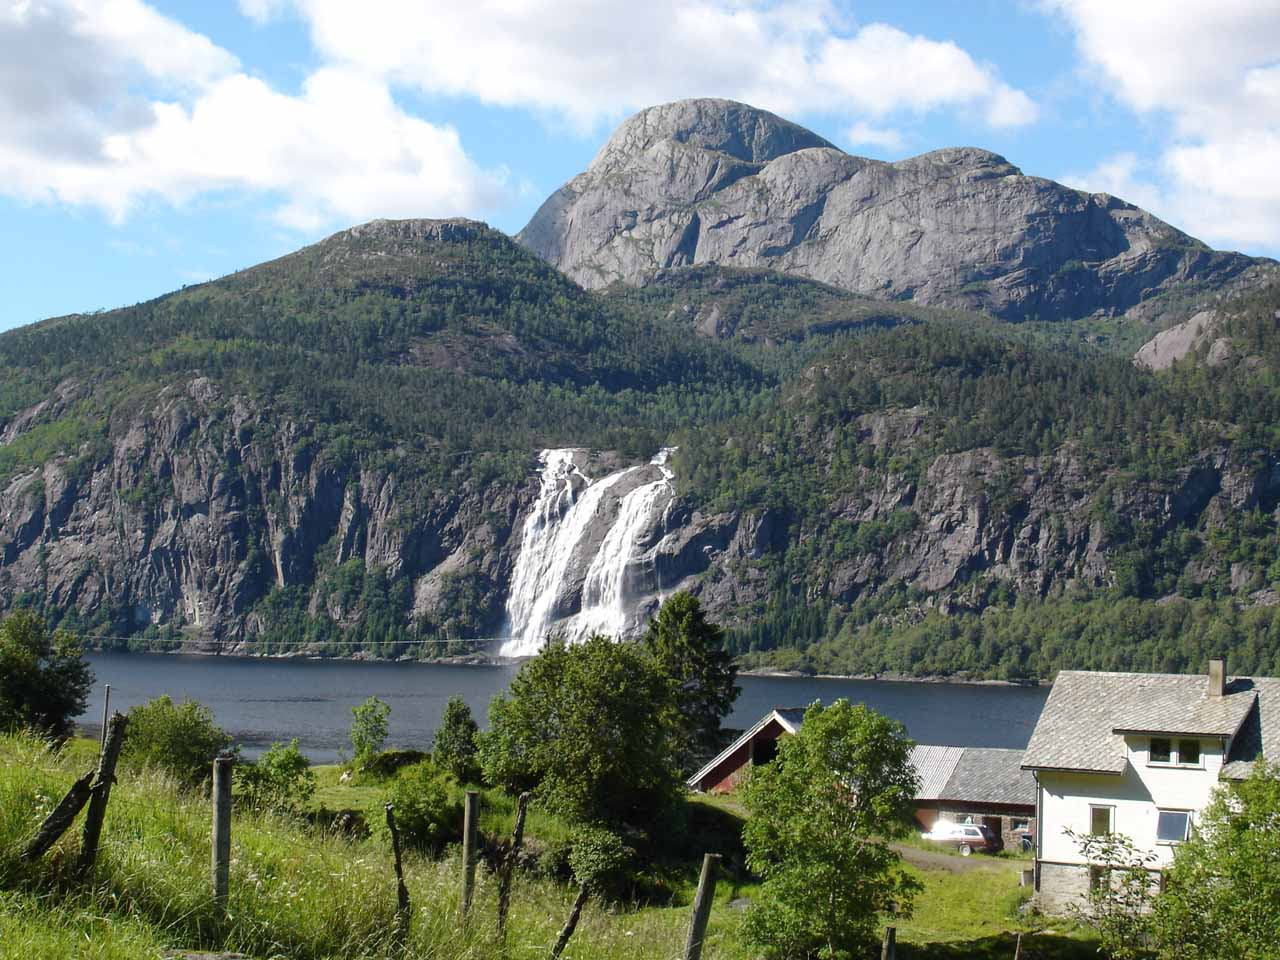 Another attractive waterfall in Waterfall Country was Laukelandsfossen on the Dalsfjord west of Førde